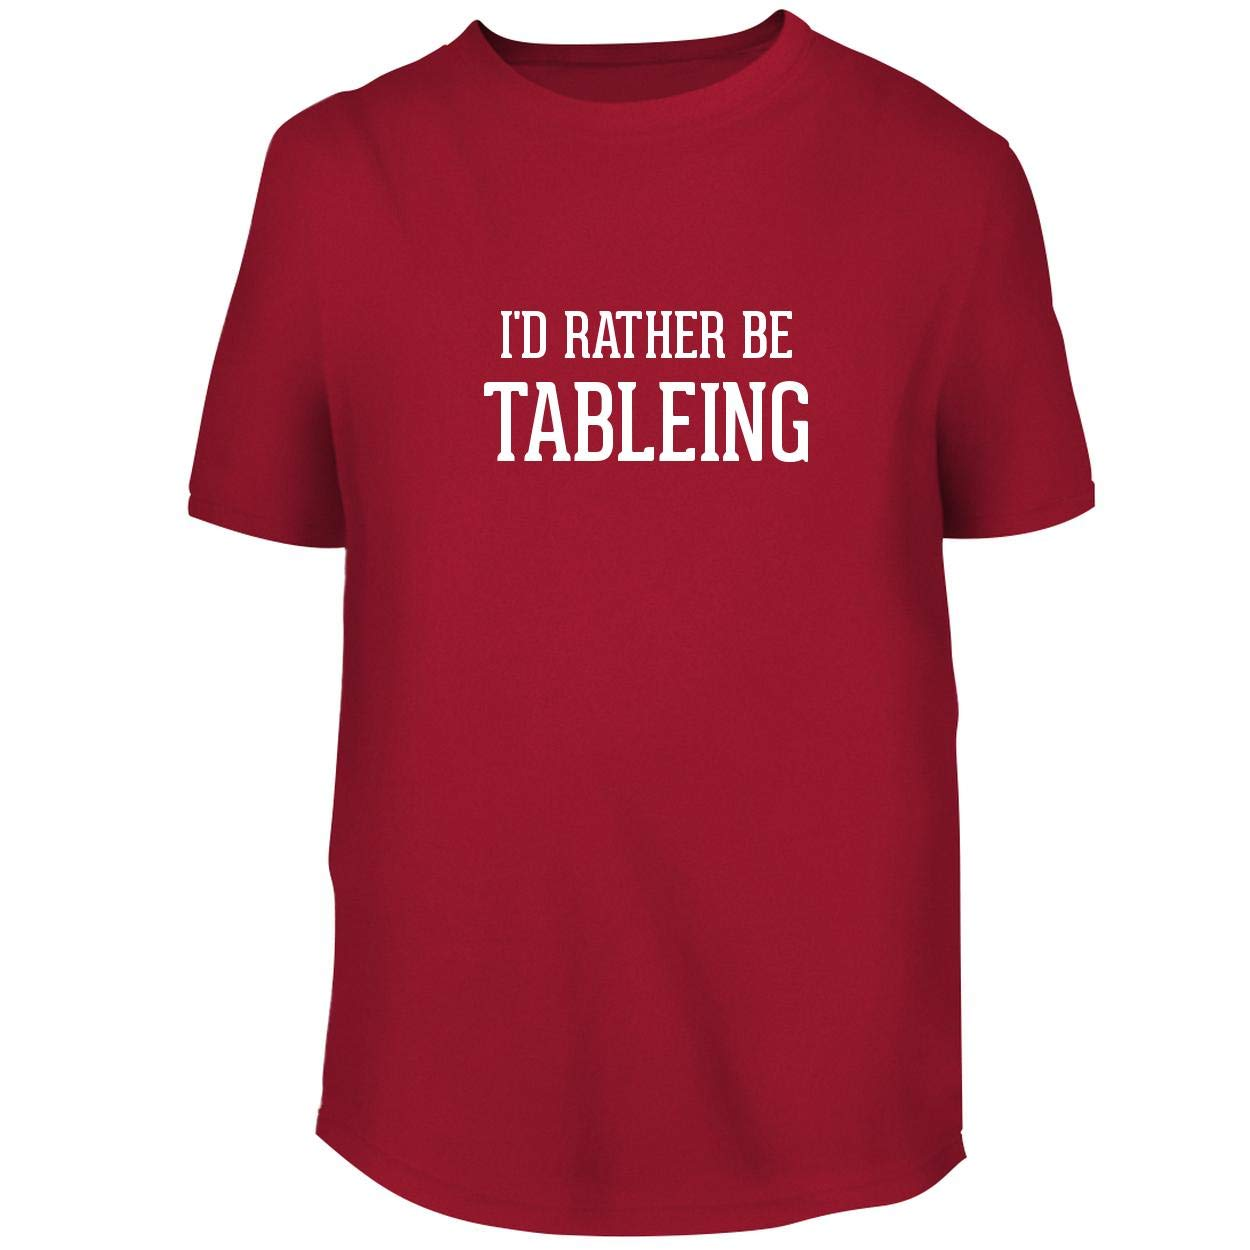 Amazon Com Bh Cool Designs I D Rather Be Tableing Men S